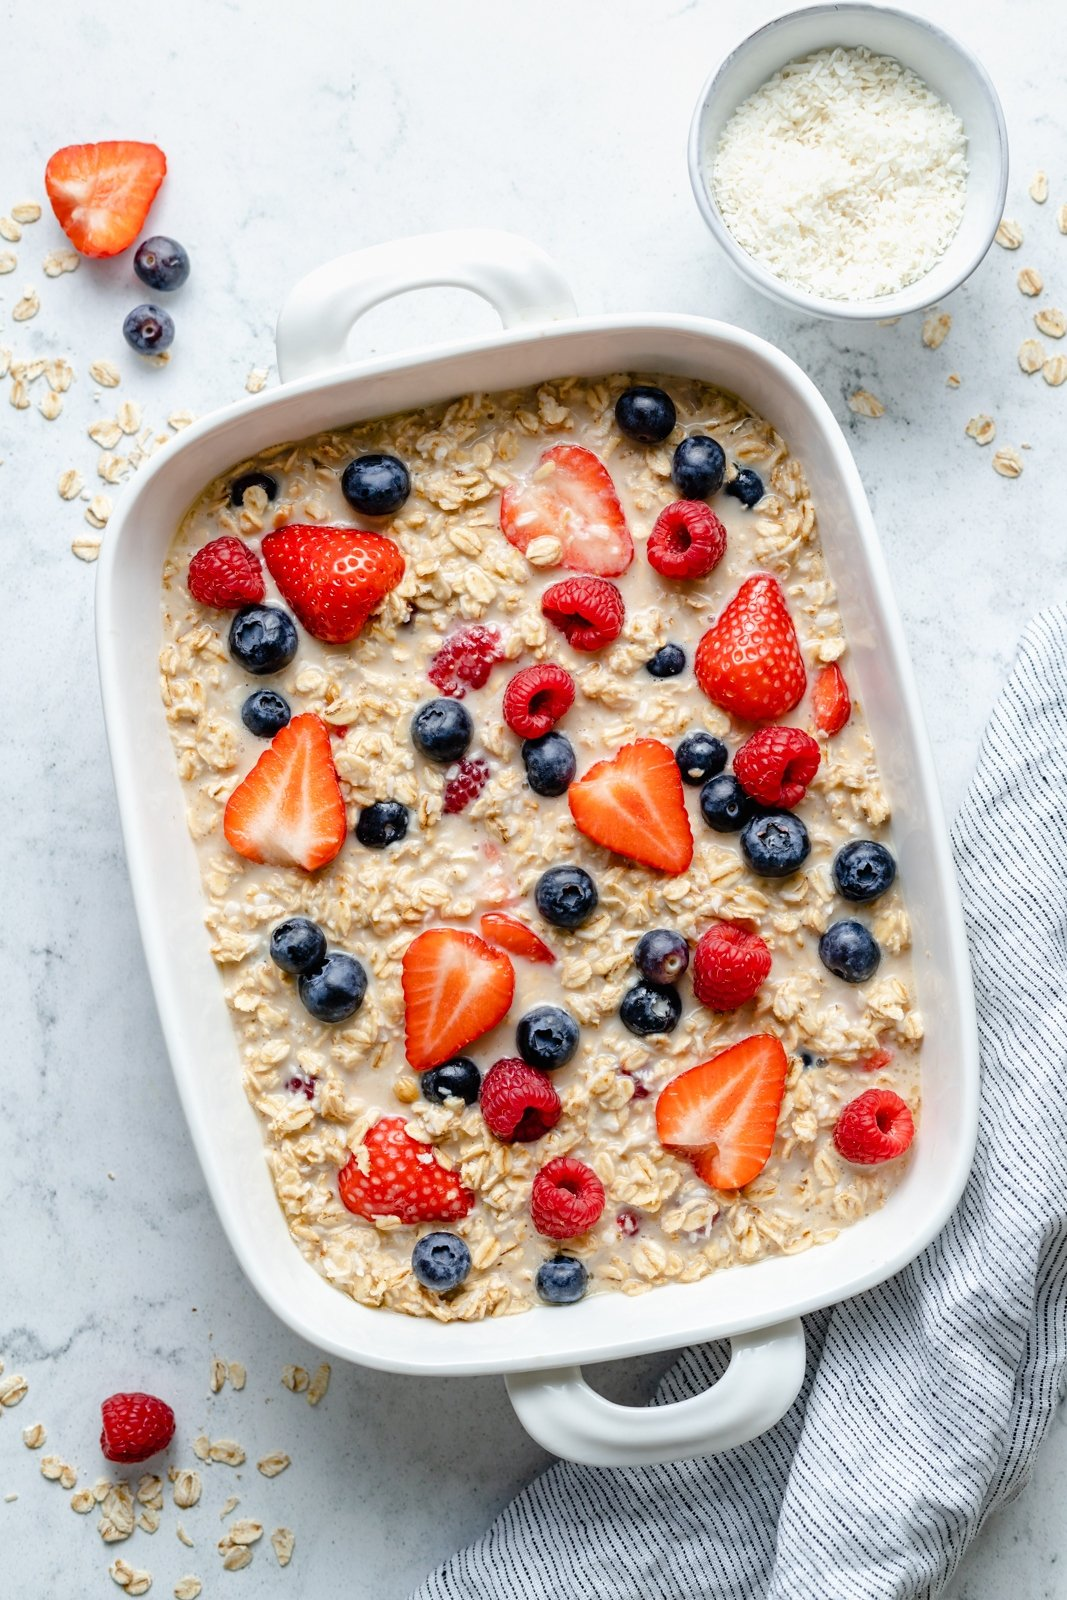 unbaked berries and cream baked oatmeal in a baking dish